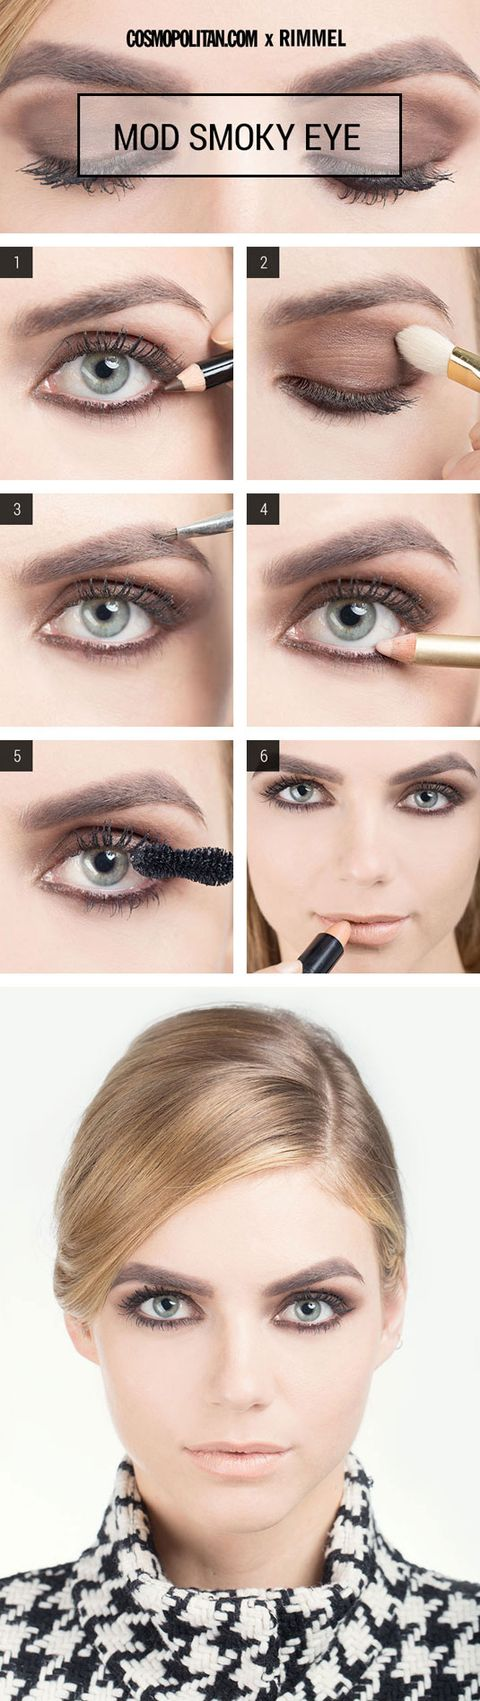 Sexy eye makeup looks sexy eye makeup how tos this 60s inspired mod eyeshadow says come hither basically you wont go unnoticed after following along with this tutorial baditri Choice Image